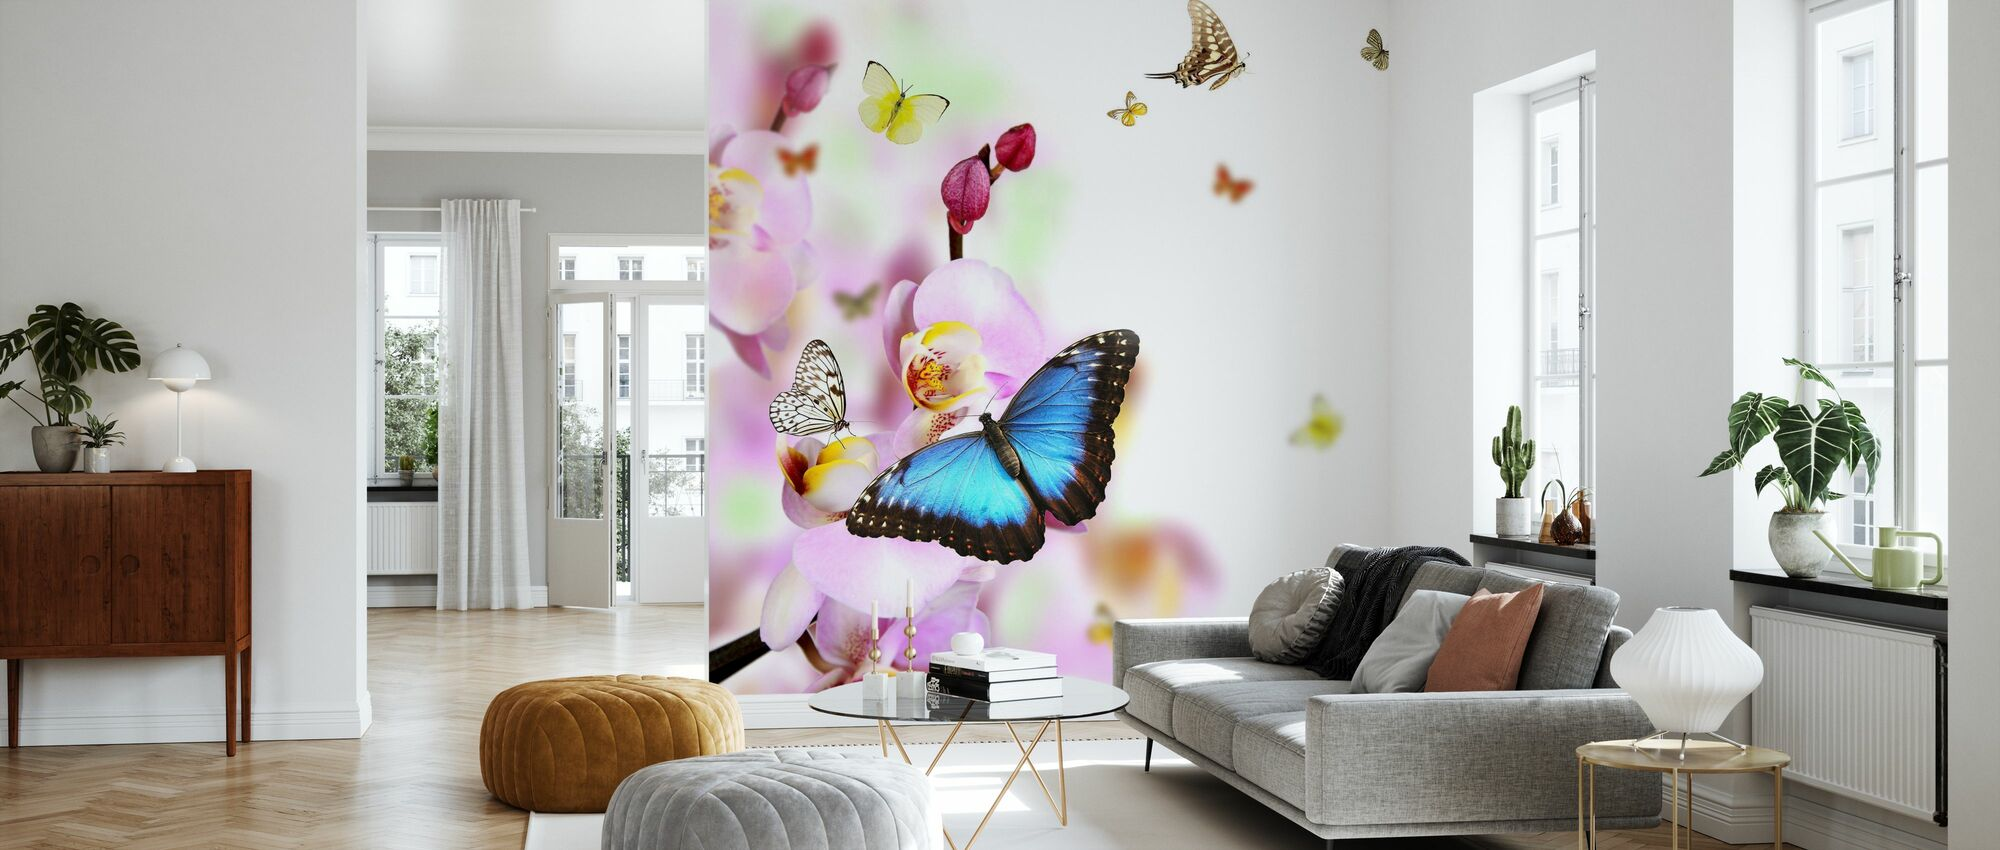 Butterflies and Orchid Blossoms - Wallpaper - Living Room